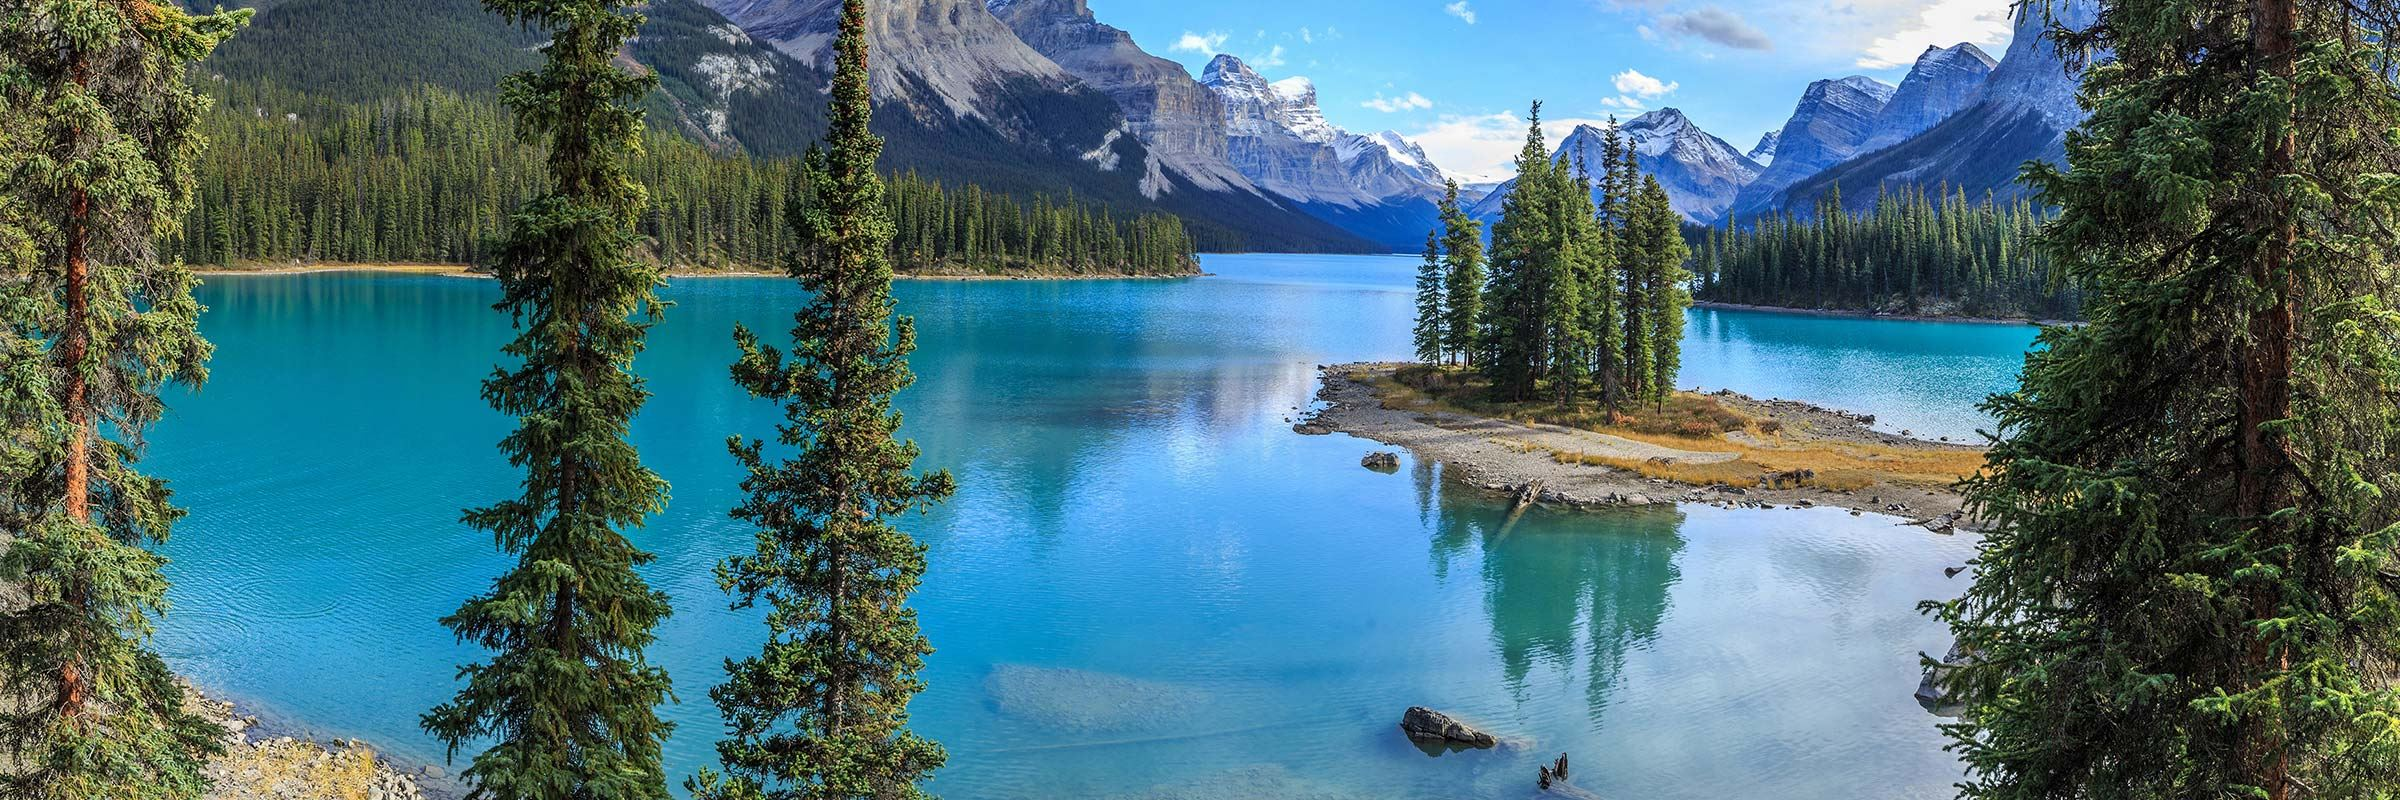 Popular Day Hikes 2 Canadian Rockies